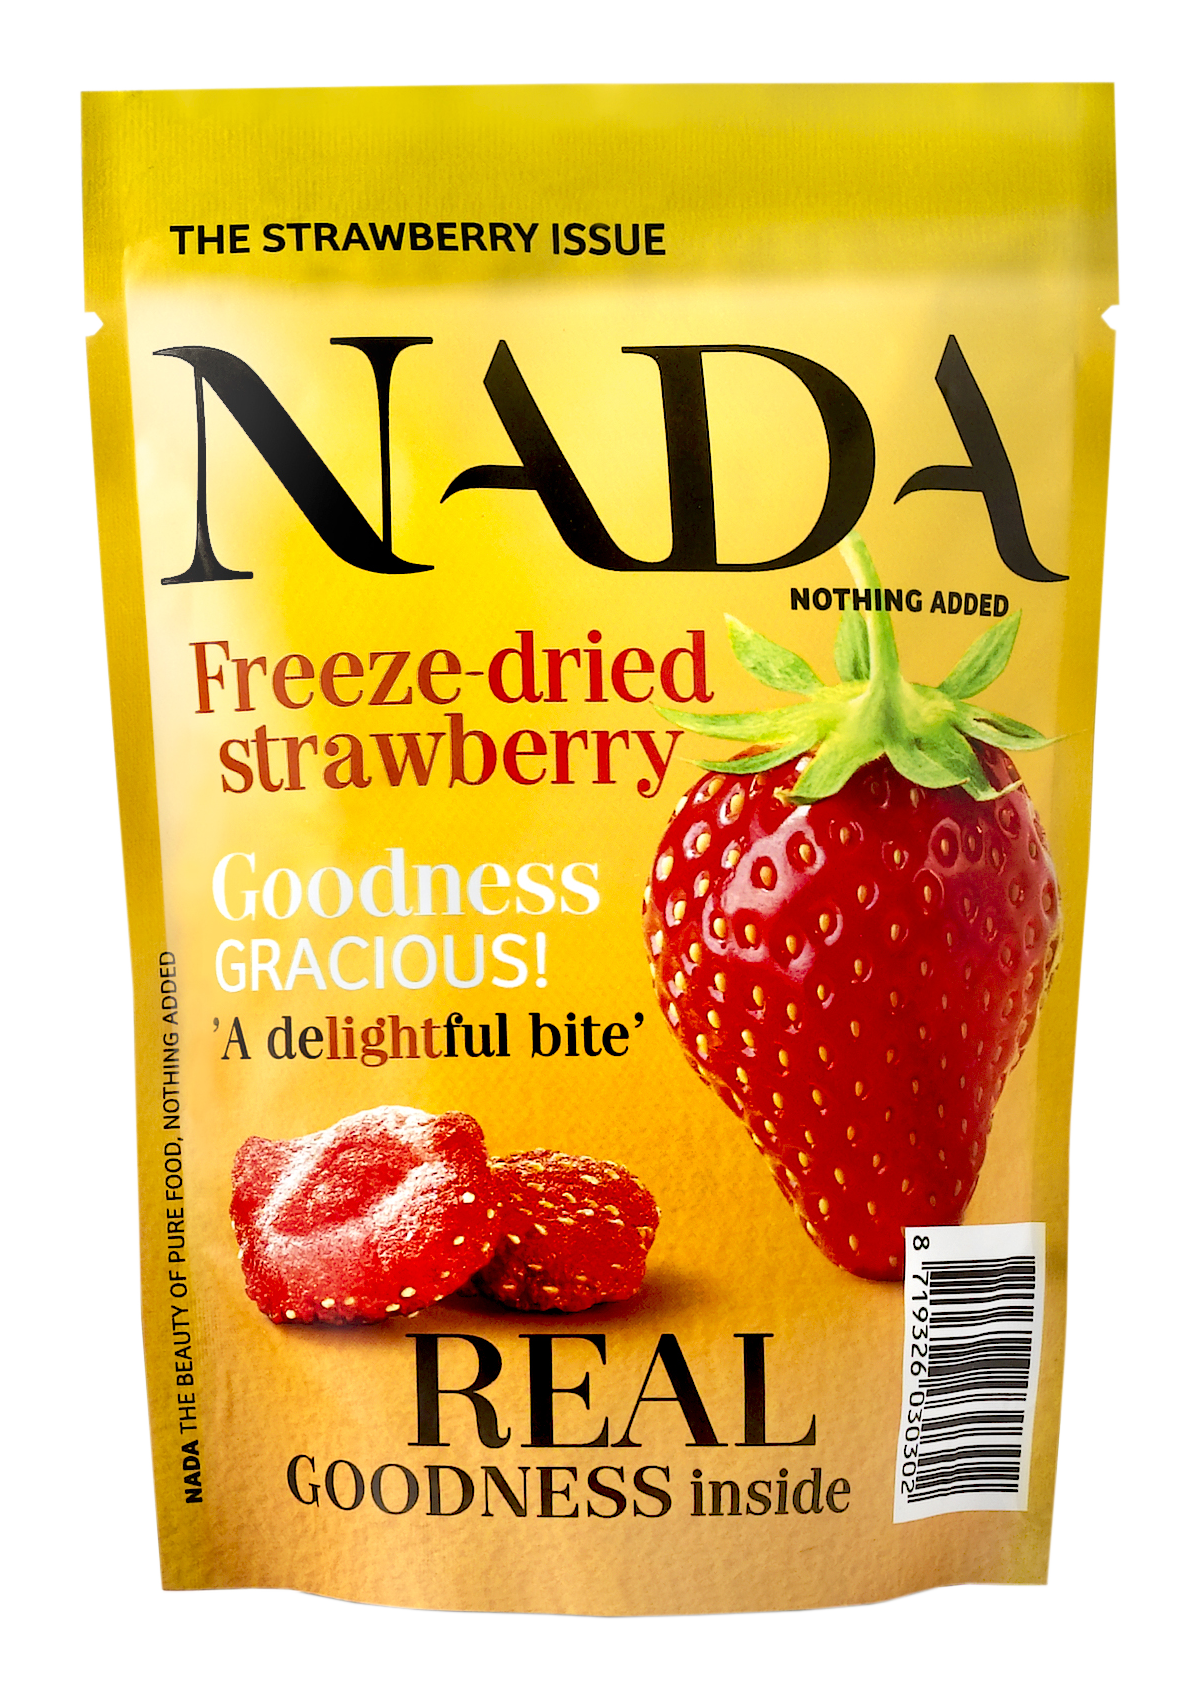 NADA freeze-dried strawberry